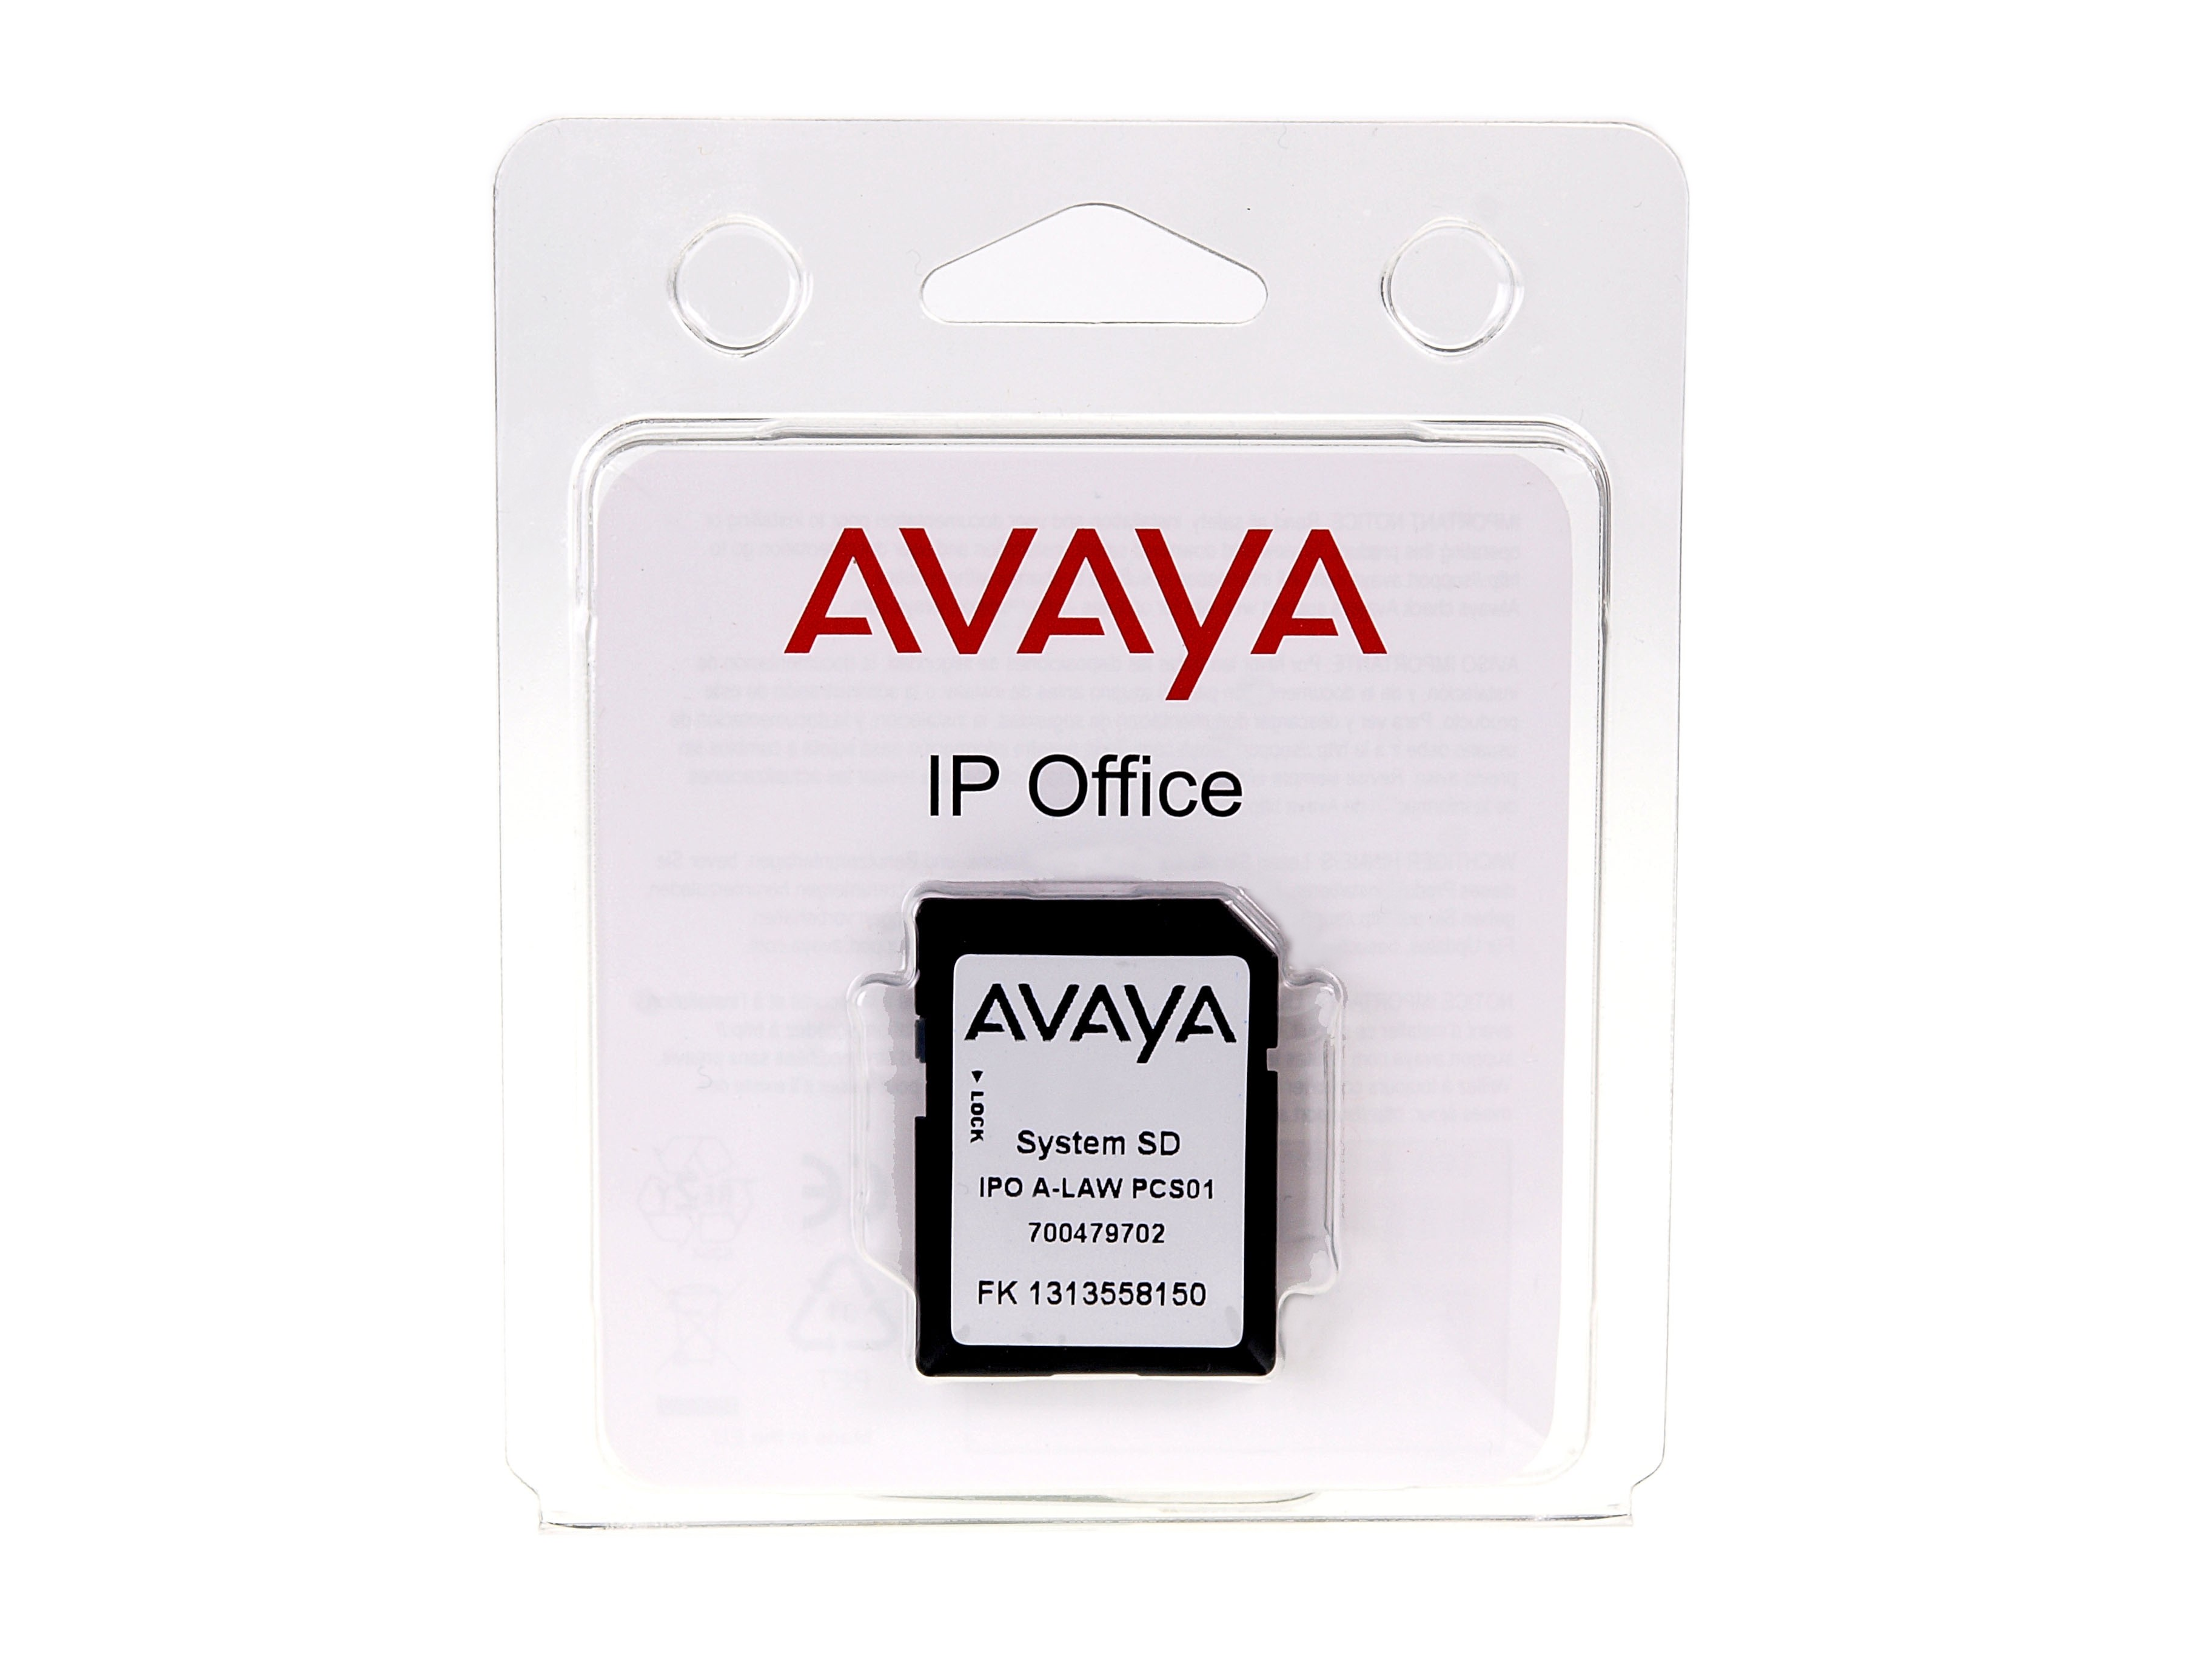 cabling before office avaya img matt ip cleanup gorgun systems phone